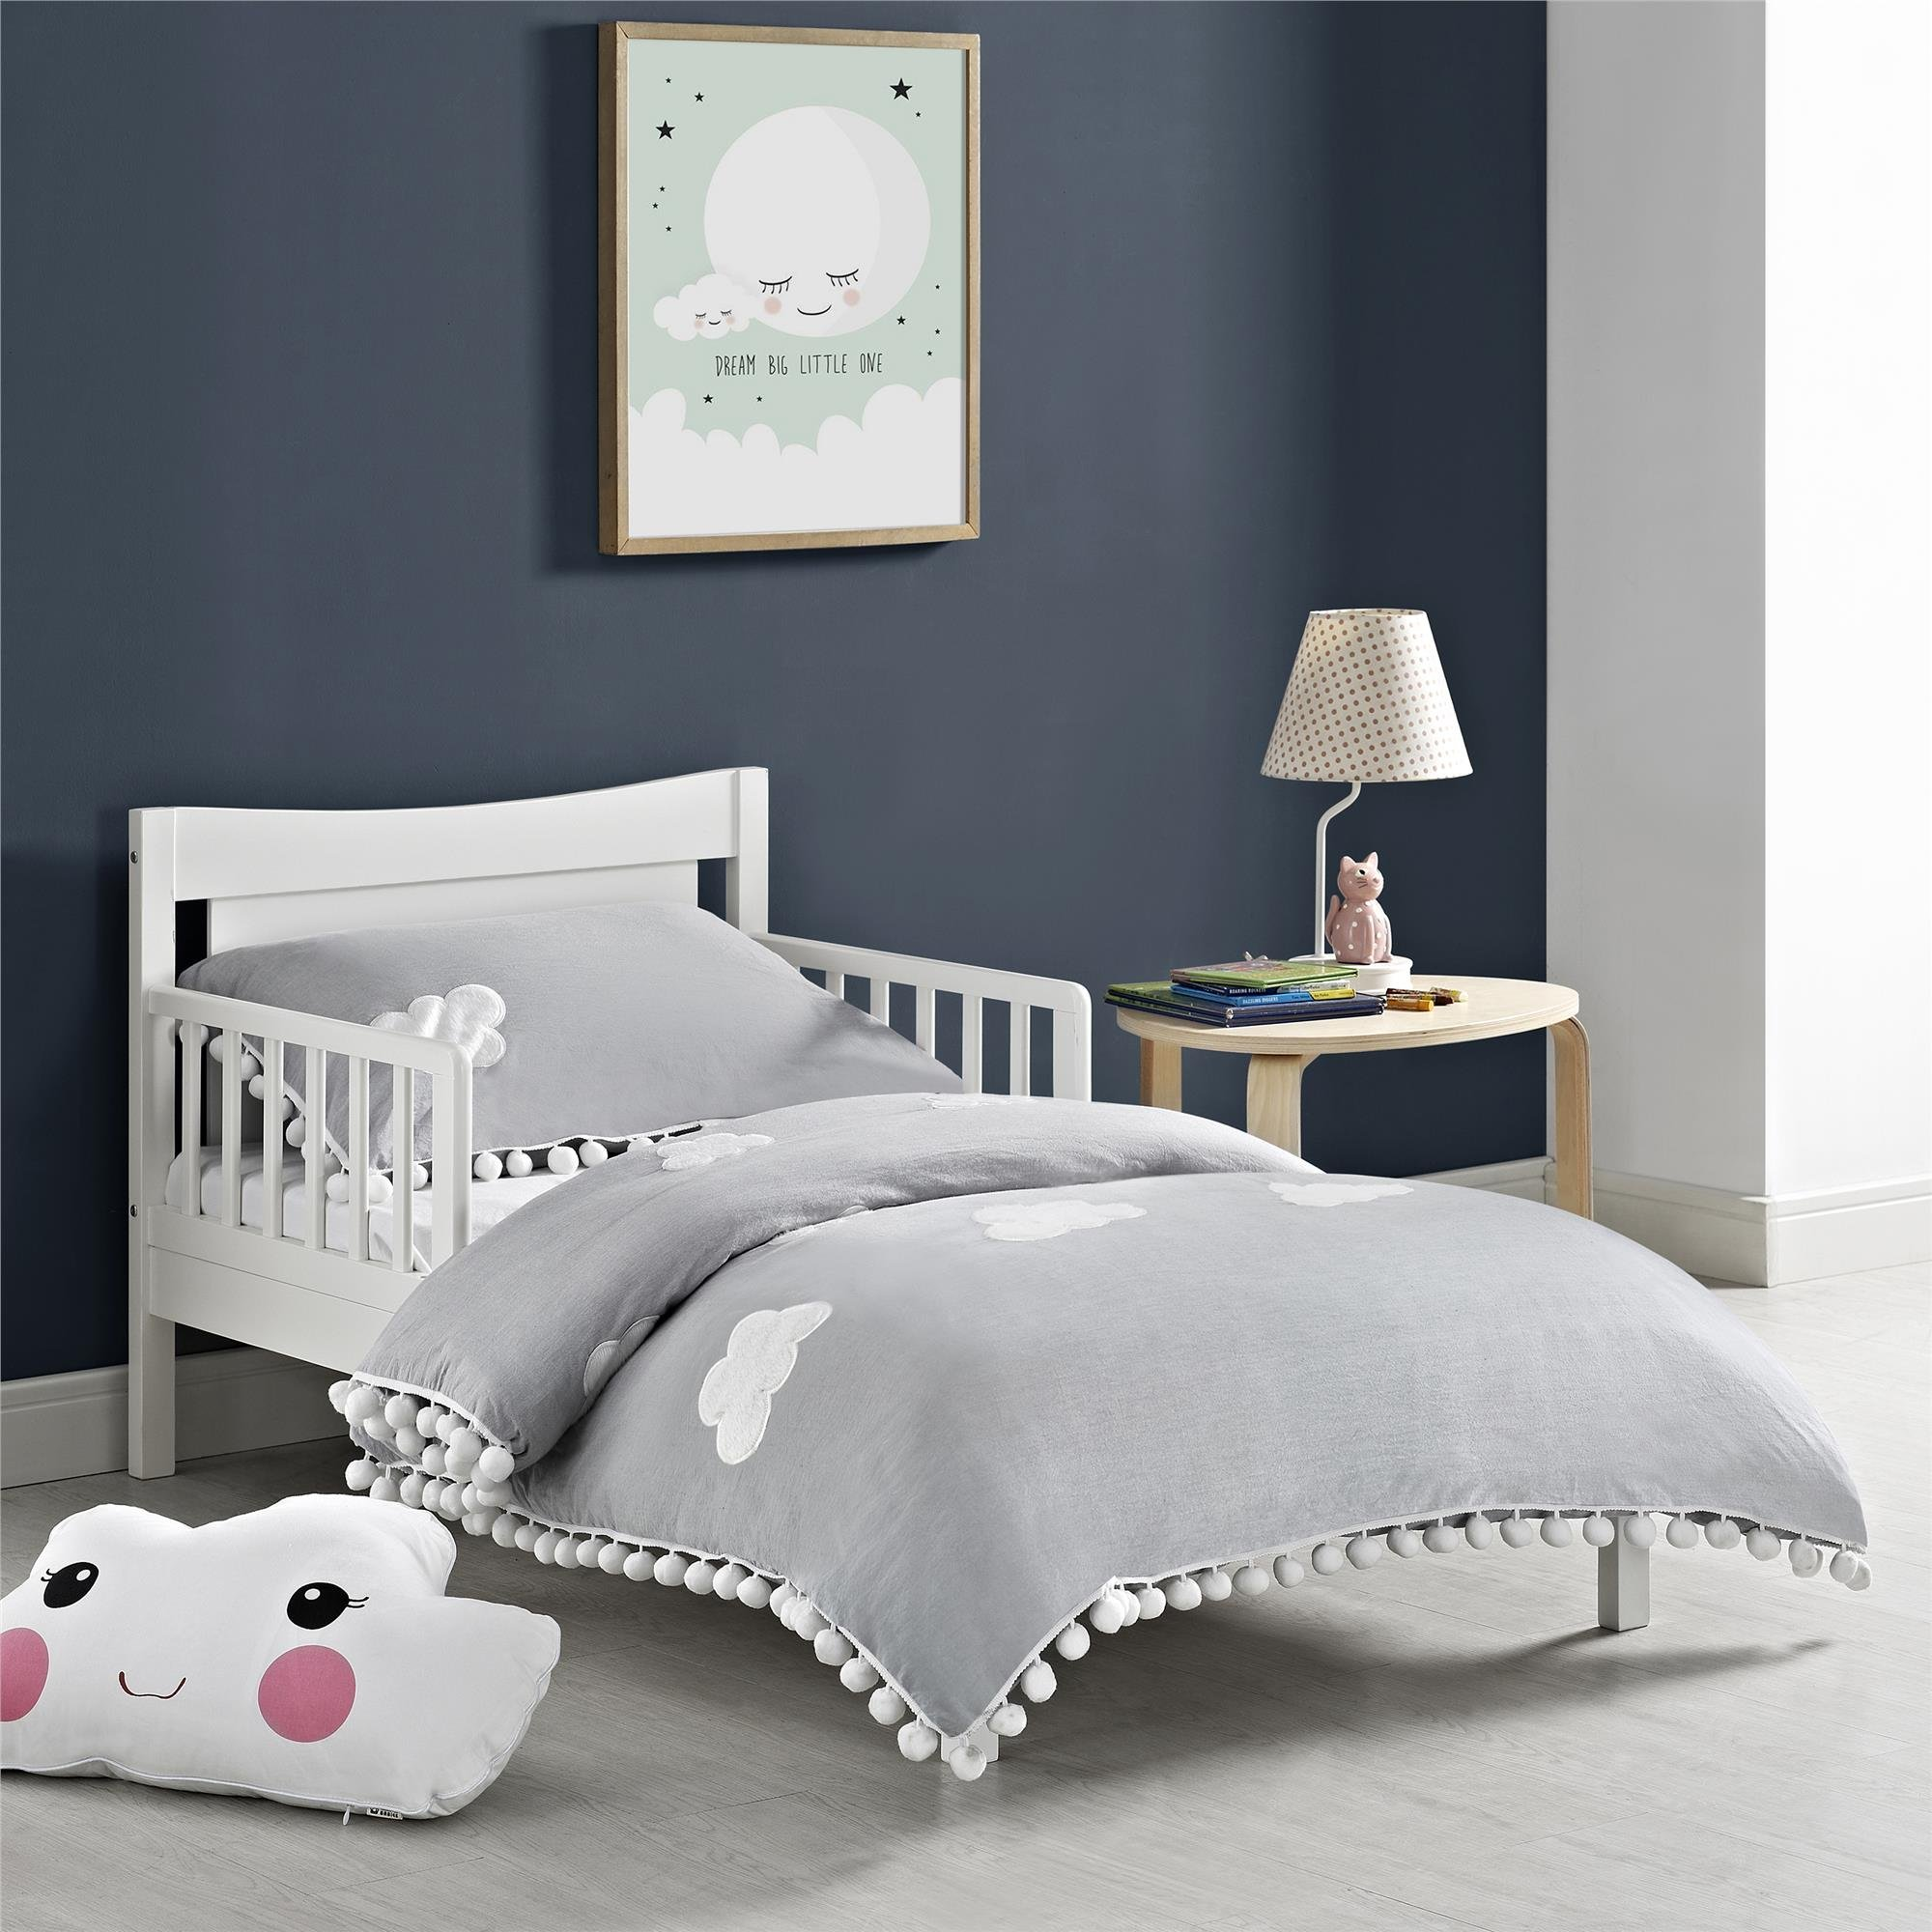 Baby Relax Memphis Toddler Bed, White by Baby Relax (Image #4)